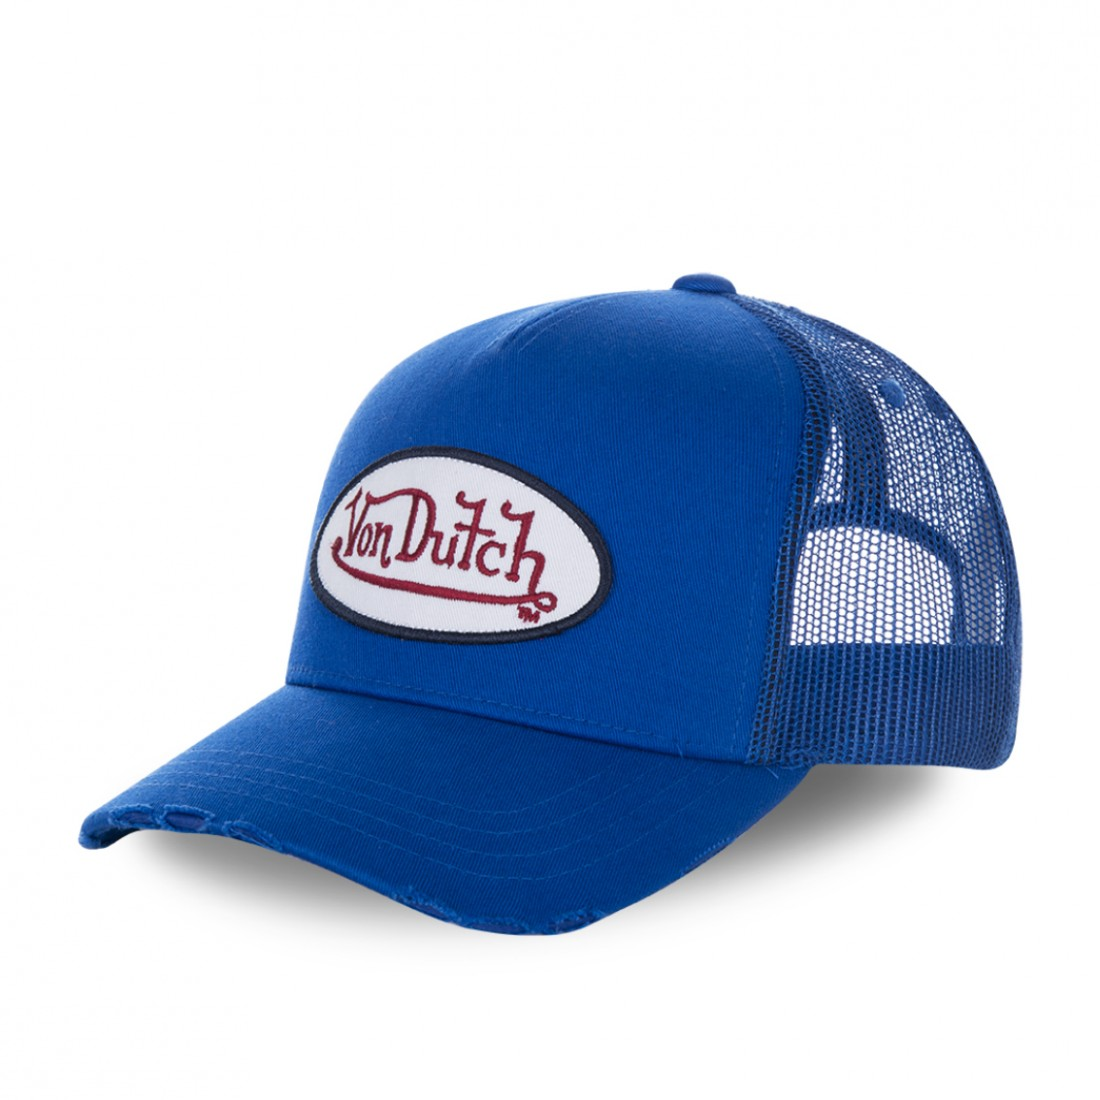 Von Dutch Fresh Blue Cap With Mesh